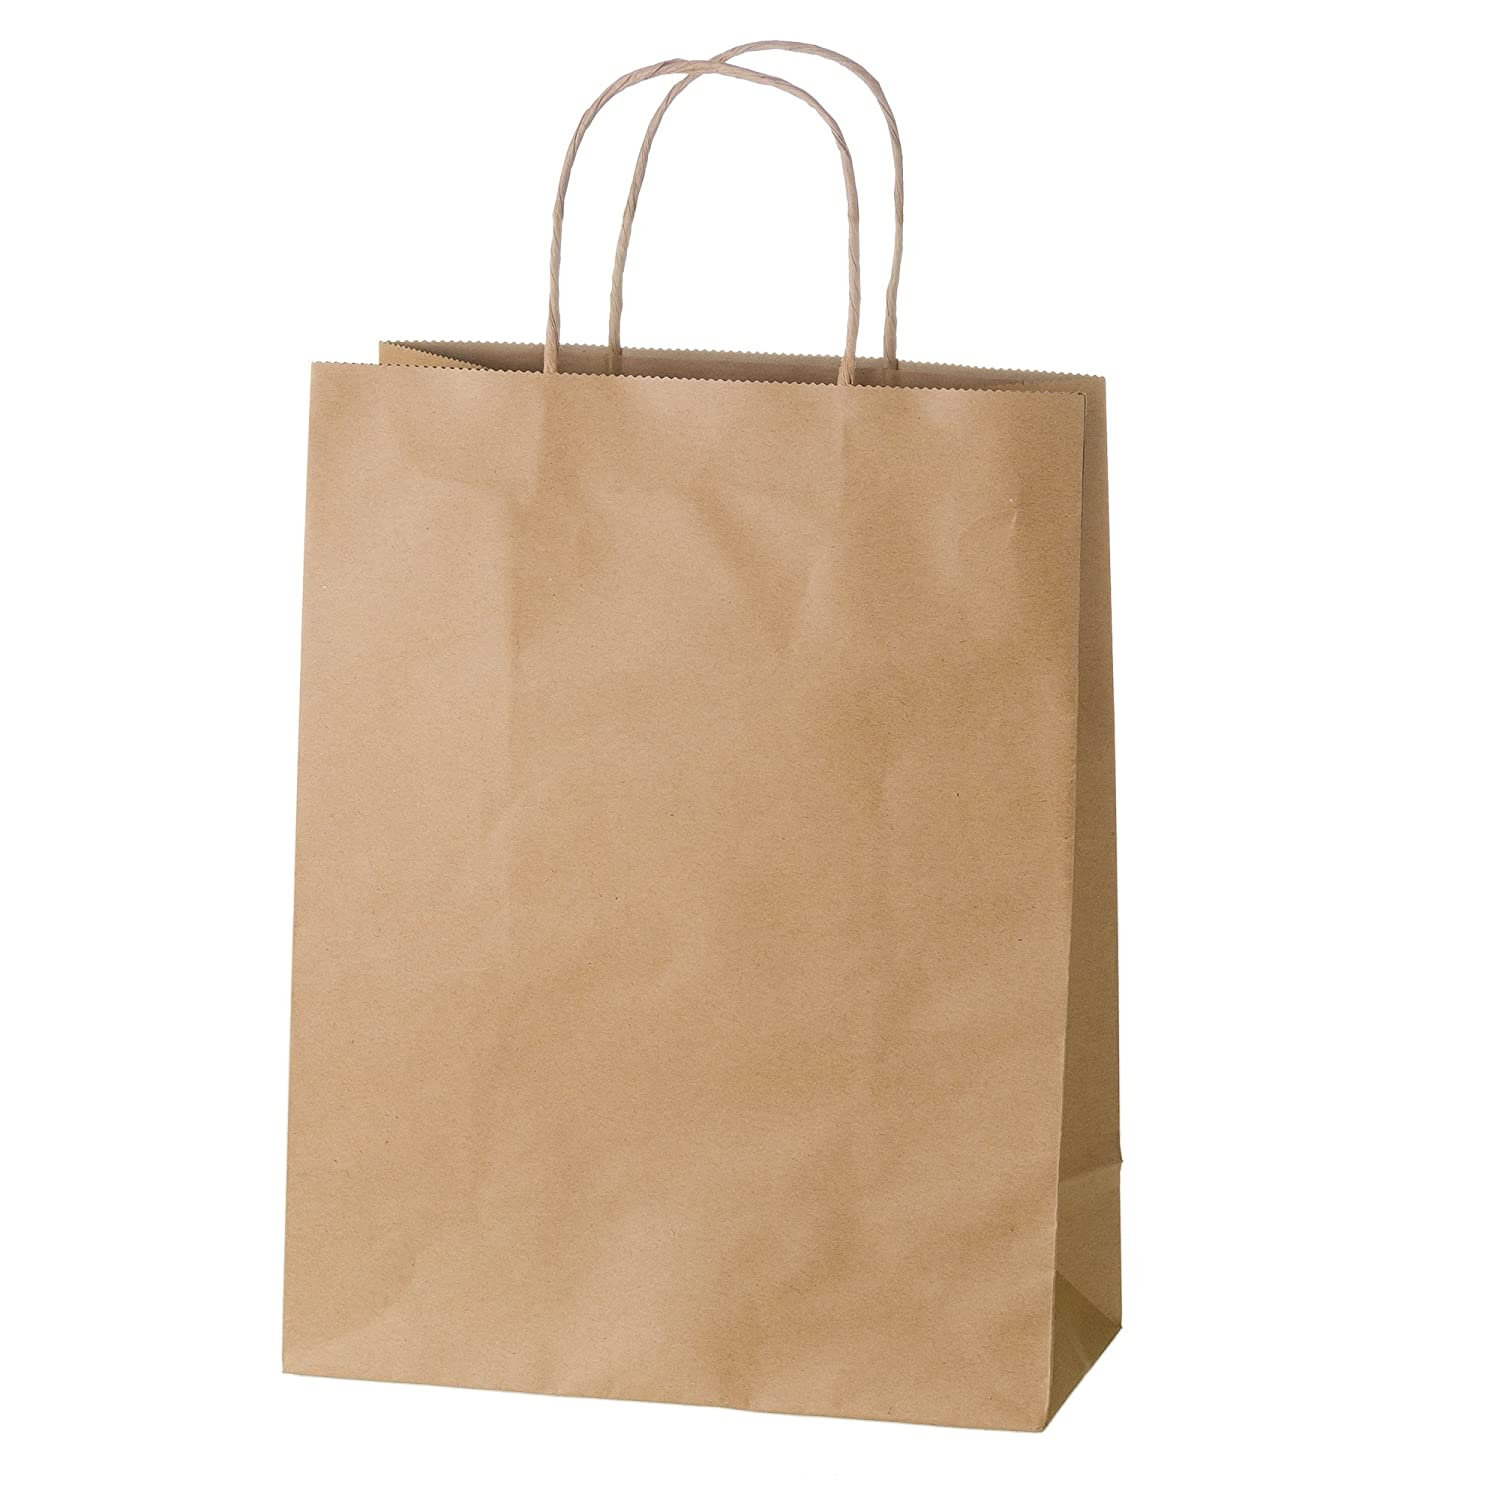 Premium Kraft Paper Boutique Bags with Handles for Wedding, Party Favour, Thank You, and More, Kraft-Coloured Gift Bags, 8 L x 5 W x 8 H (25 Count) - Creative Bag White Label 2A0719